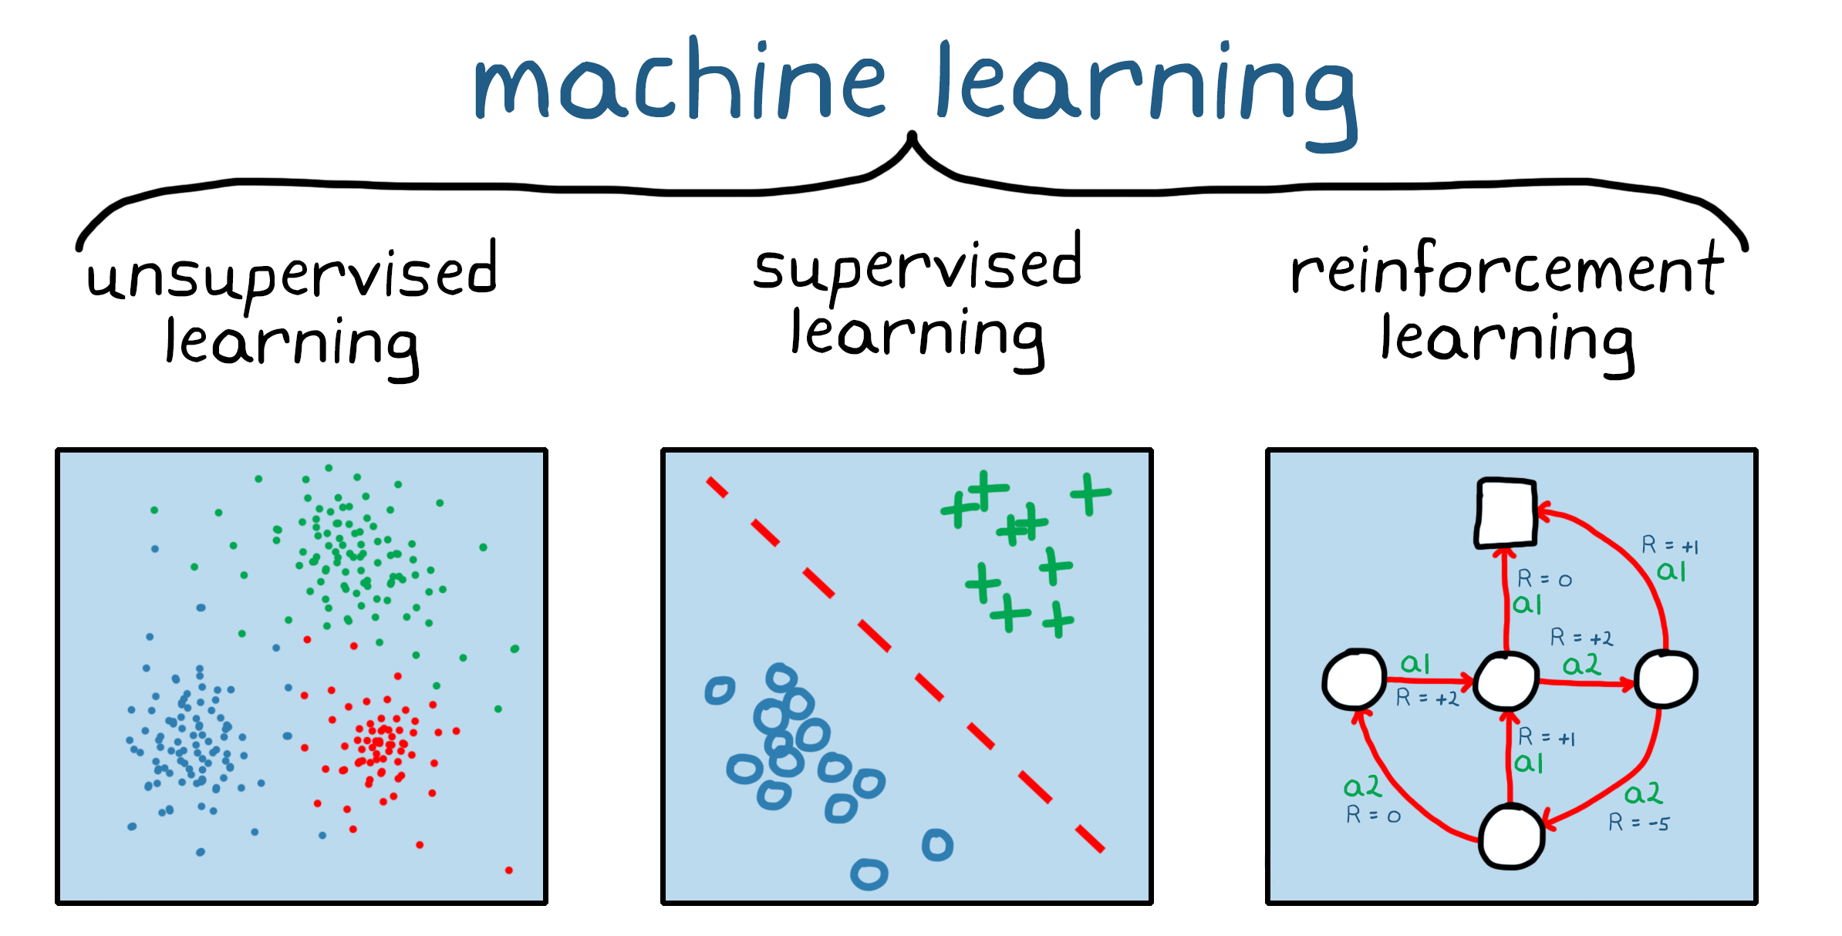 Figura 1. Tres categorías generales de machine learning: aprendizaje no supervisado, aprendizaje supervisado y reinforcement learning